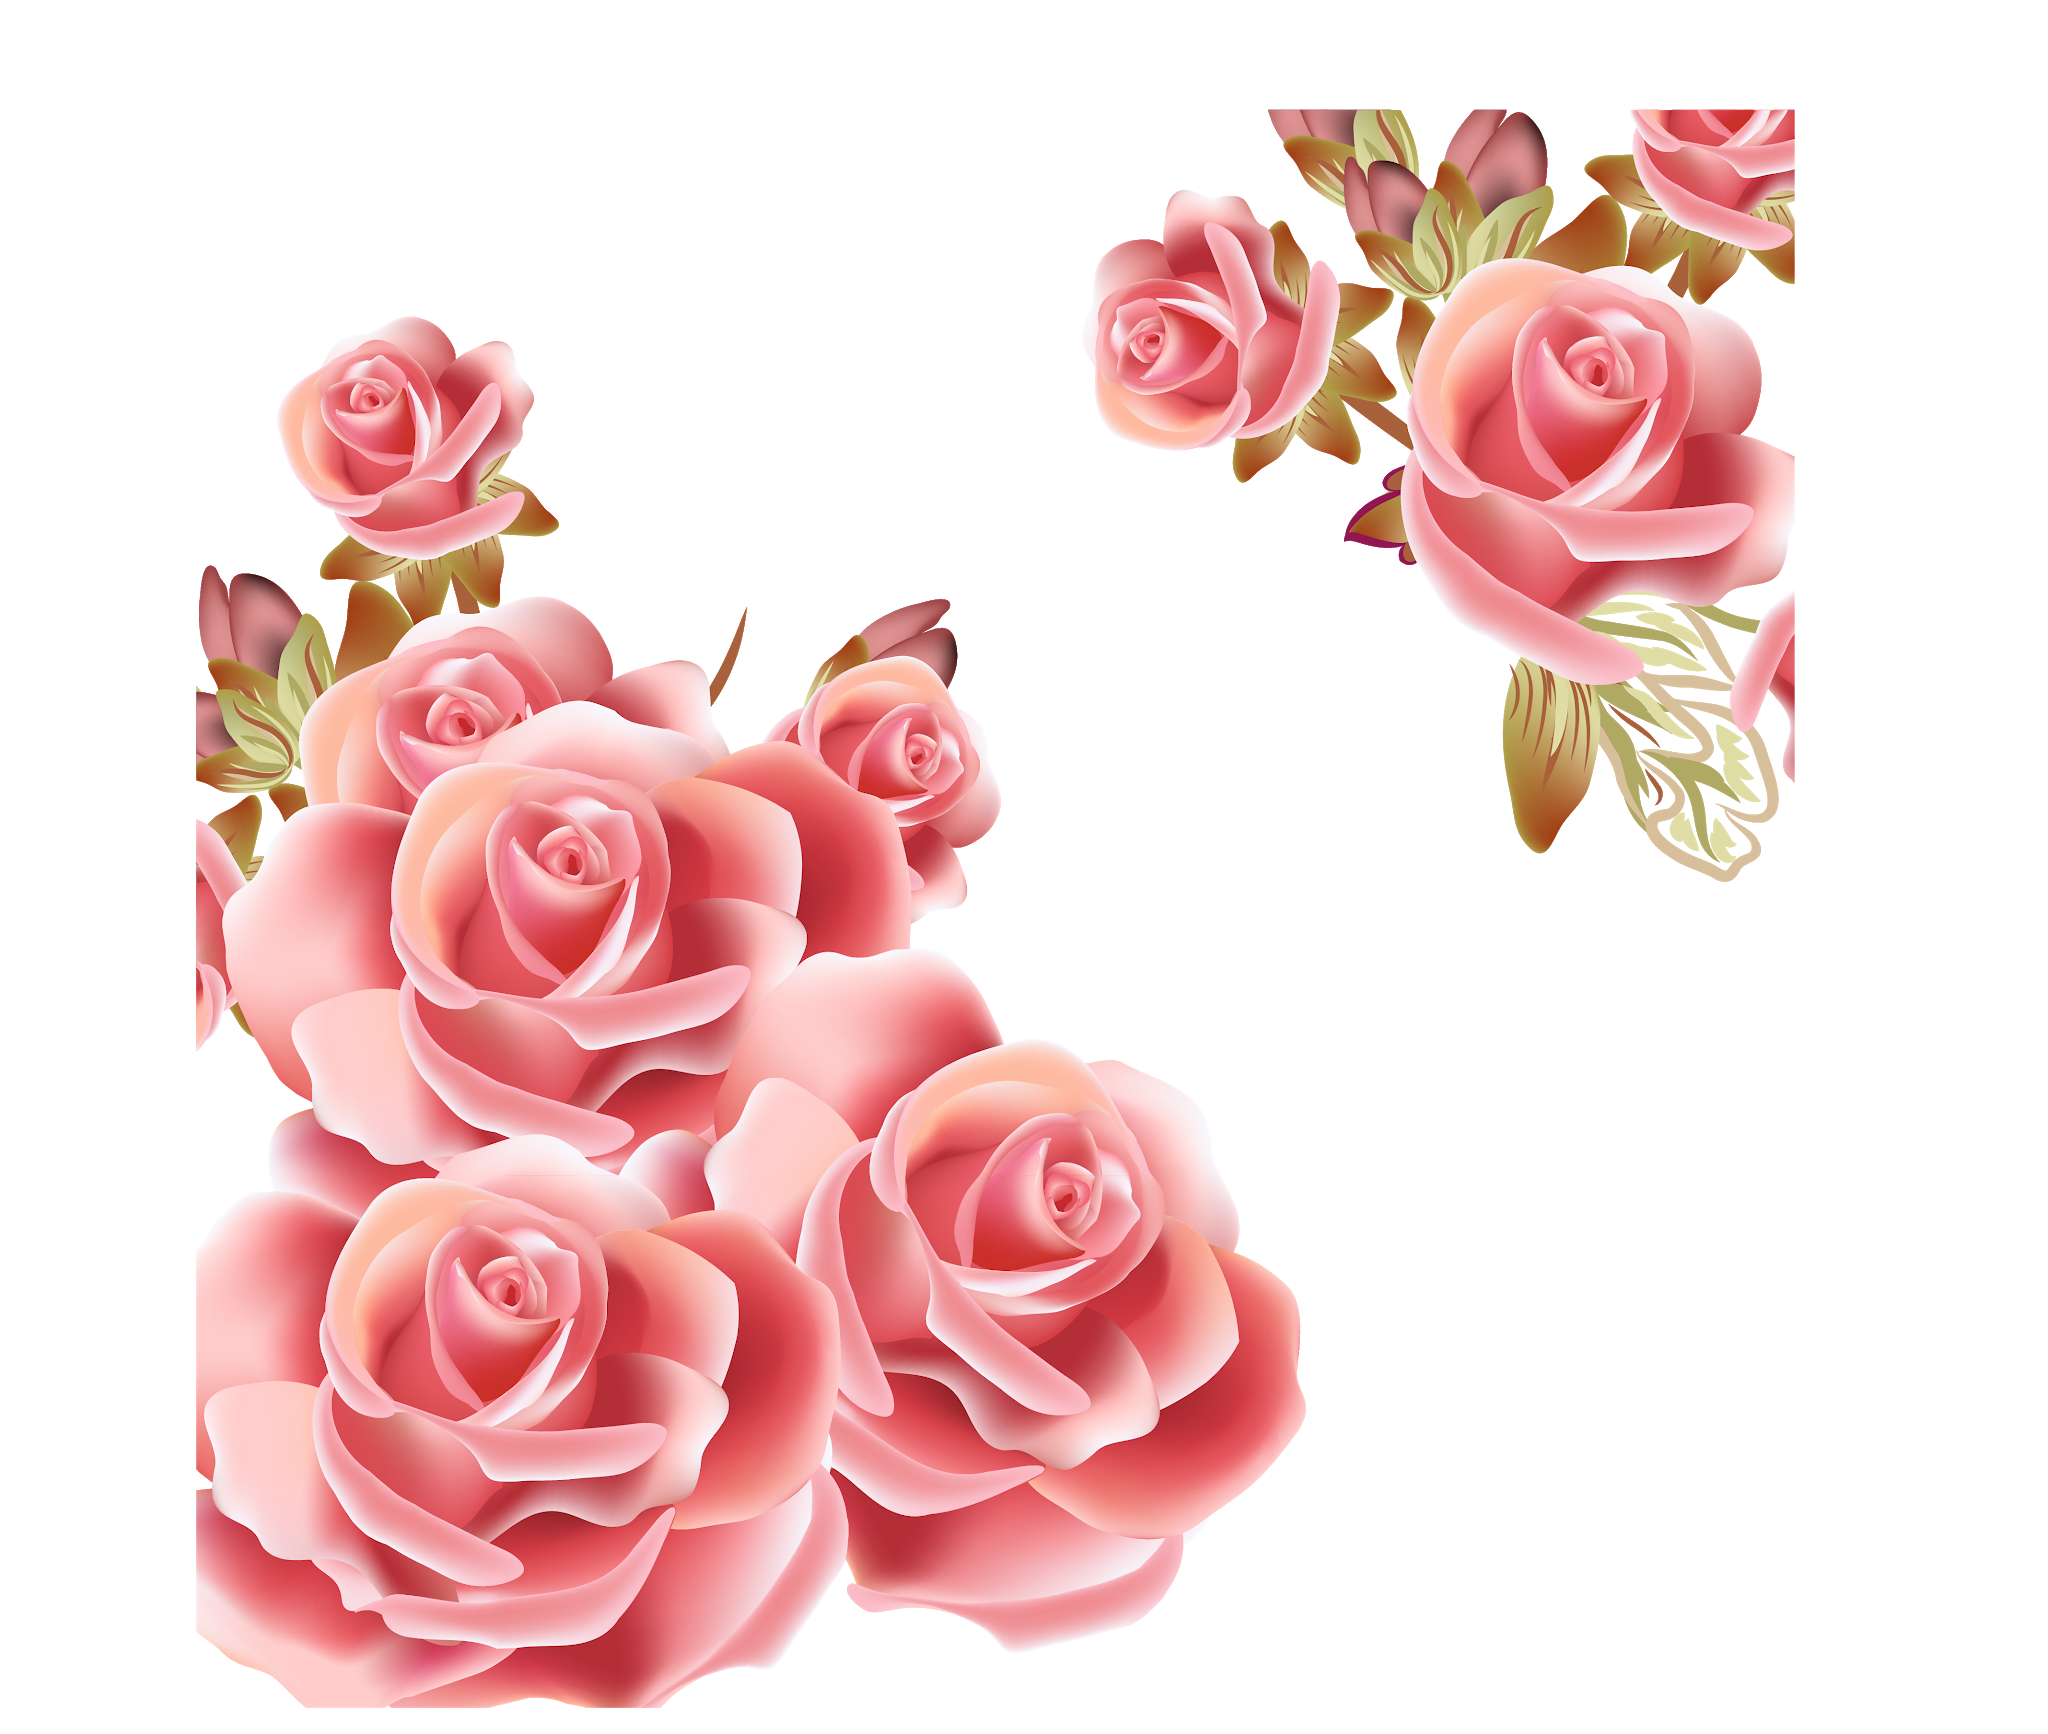 Pin By Pngsector On Bouquet Of Flower Rose Pink Flowers Pink Roses